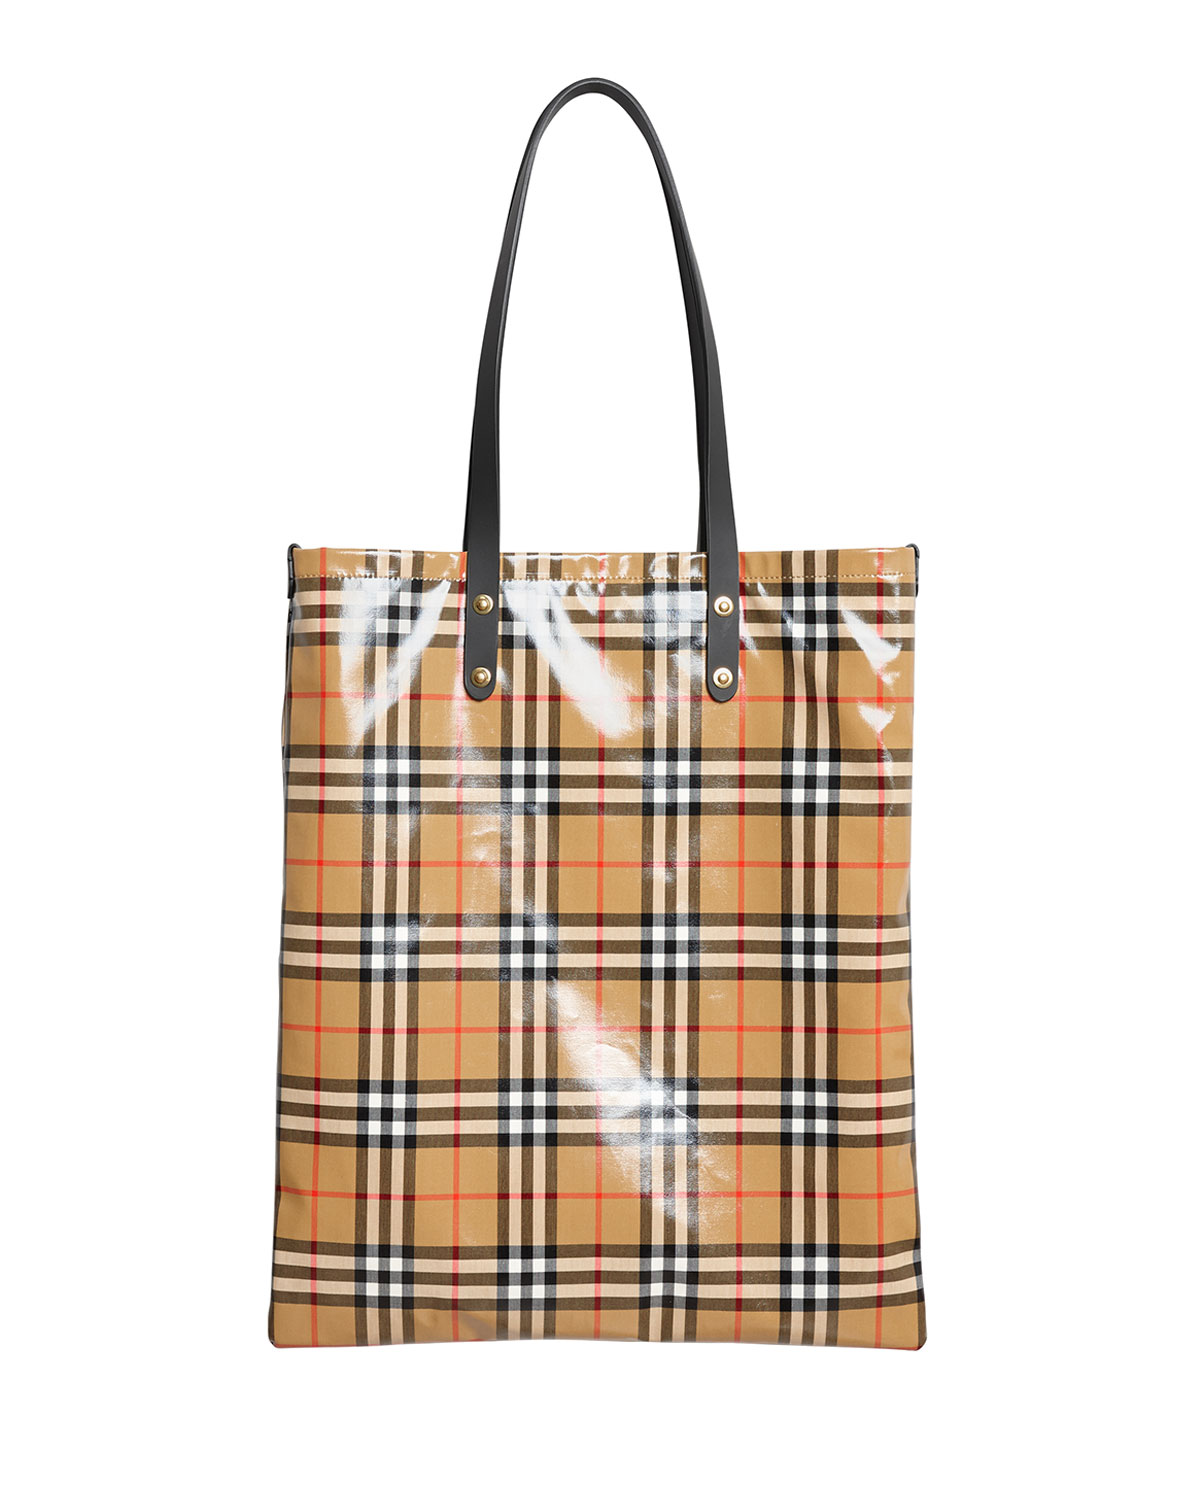 a920b4c341b1 BurberryCoated Vintage Check Large Shopper Tote Bag